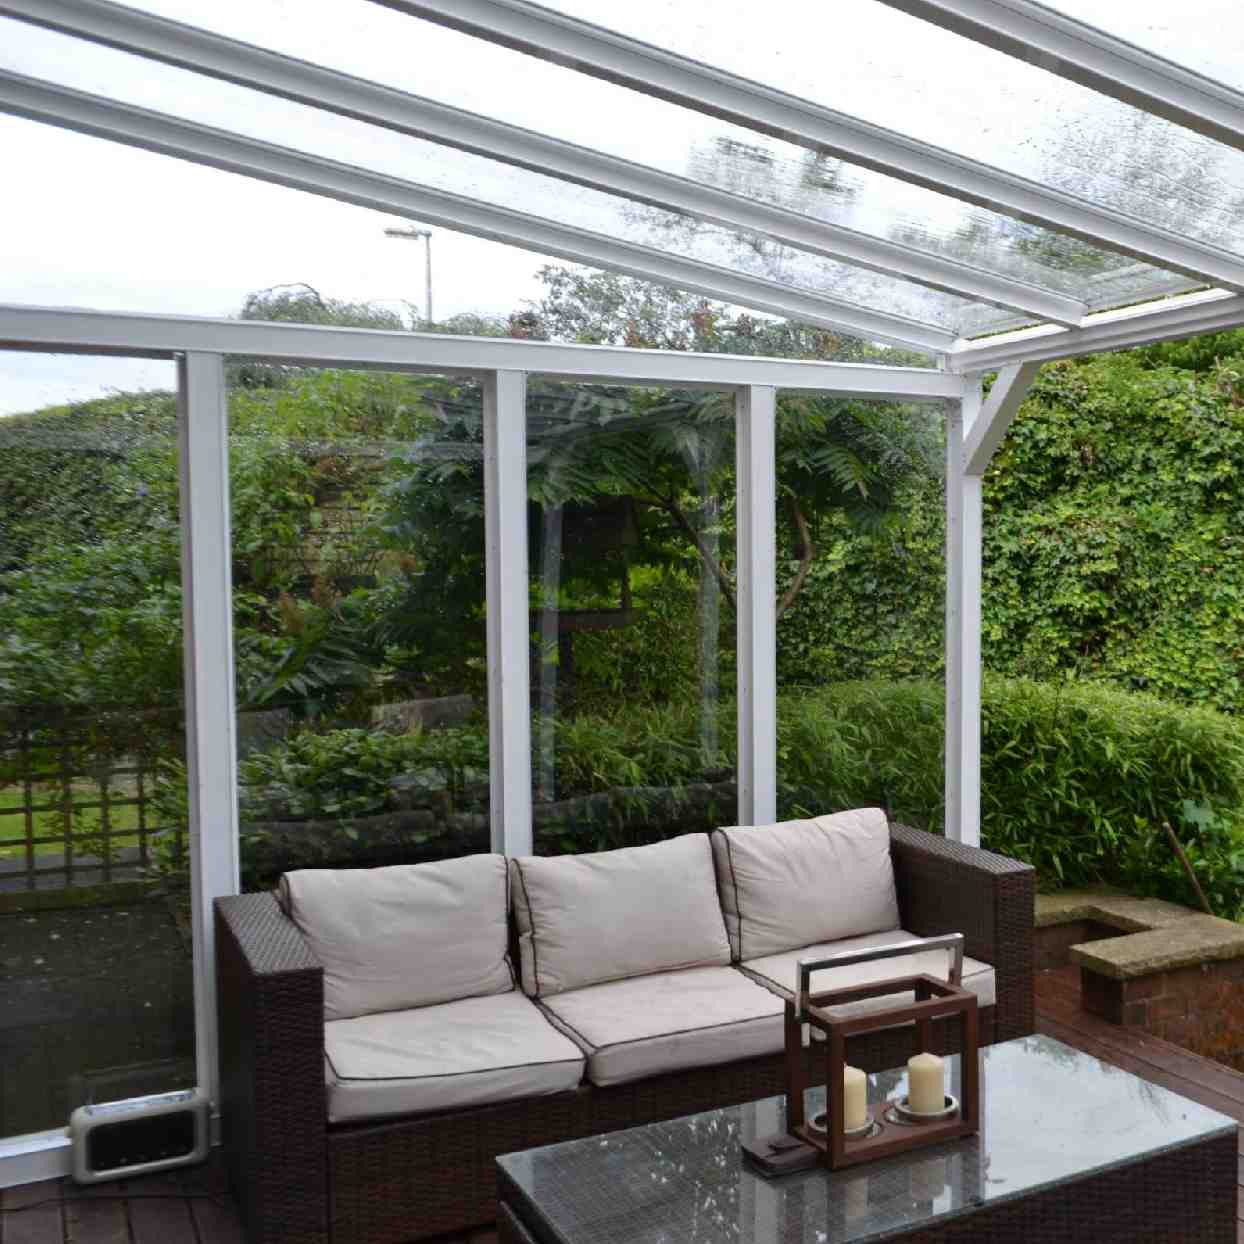 Buy Omega Verandah with 16mm Polycarbonate Glazing - 3.5m (W) x 3.5m (P), (3) Supporting Posts online today